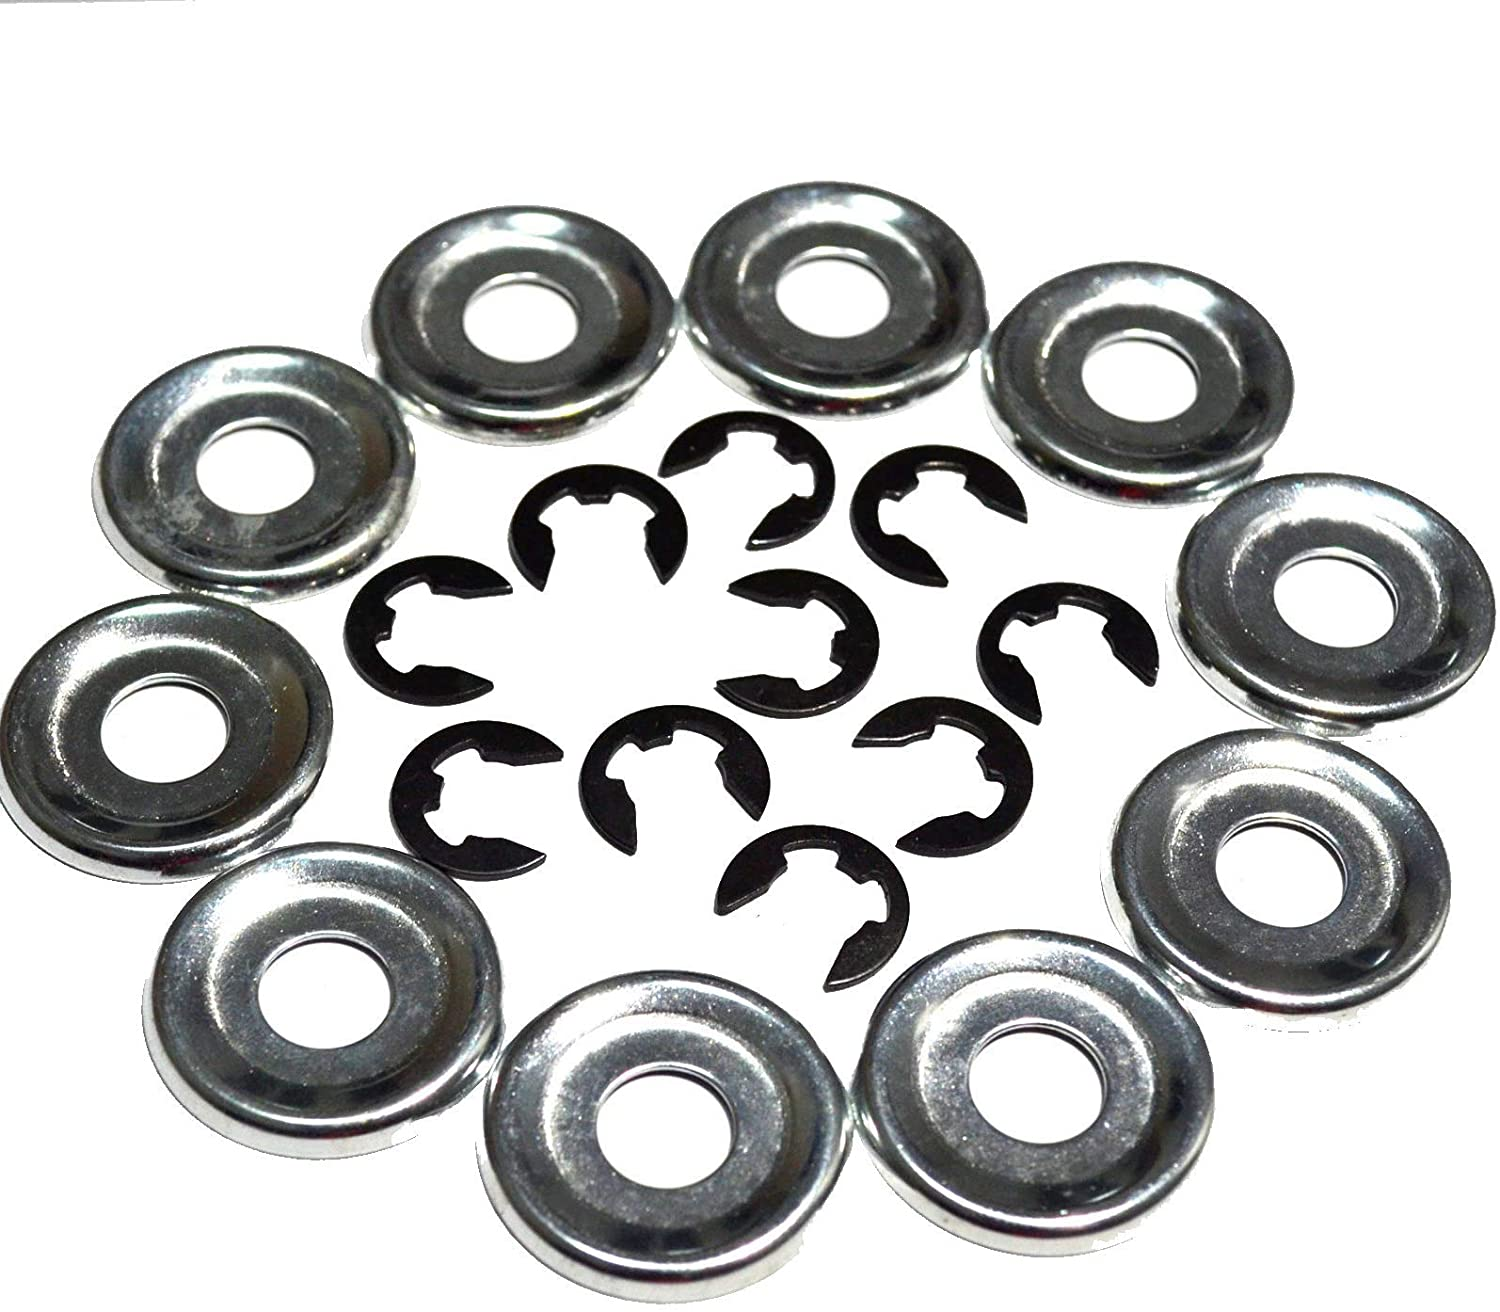 CNLEIFU 10 Sets Clutch Drum Washer E-Clip Kit Fit for Stihl Chainsaw 017 018 021 023 025 MS170 MS180 MS230 MS210 MS250 Replace 9460 624 0801 0000 958 1022